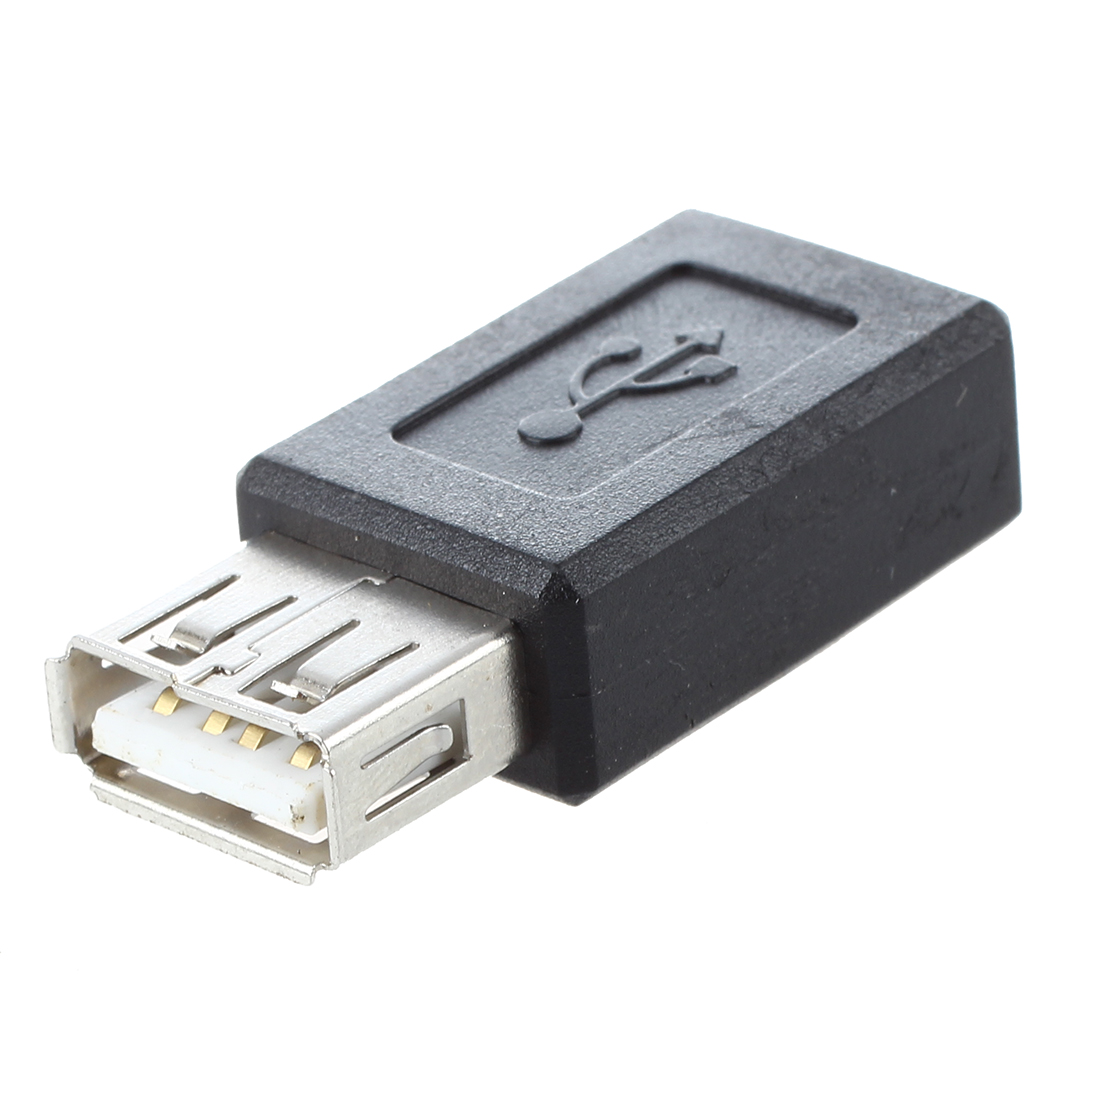 Black USB 2.0 Type A Female To Micro USB B Female Adapter Plug Converter